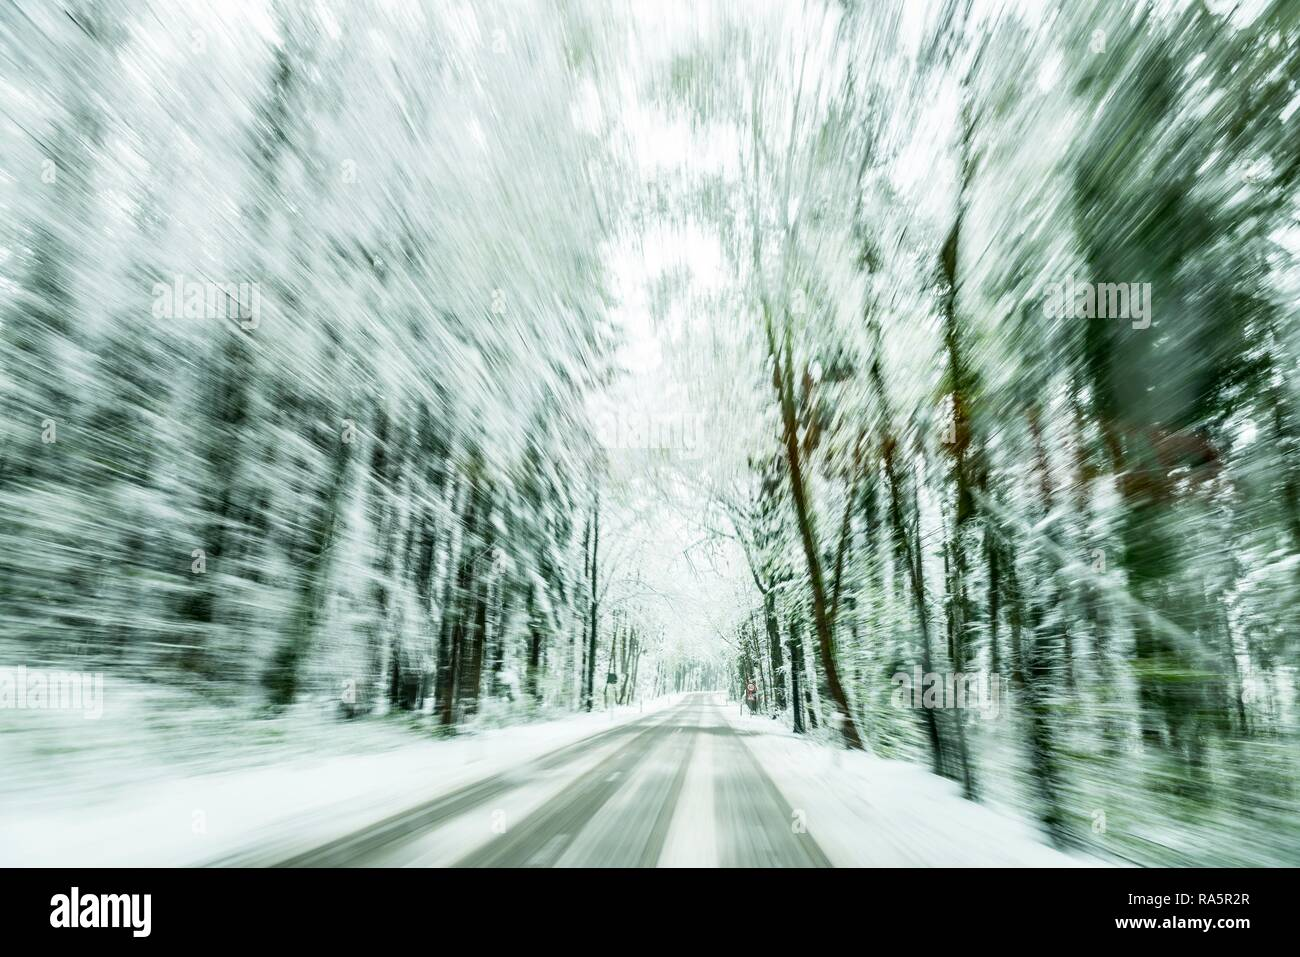 Snow-covered road in snow-covered forest, slippery road, Unterallgäu, Bavaria, Germany - Stock Image